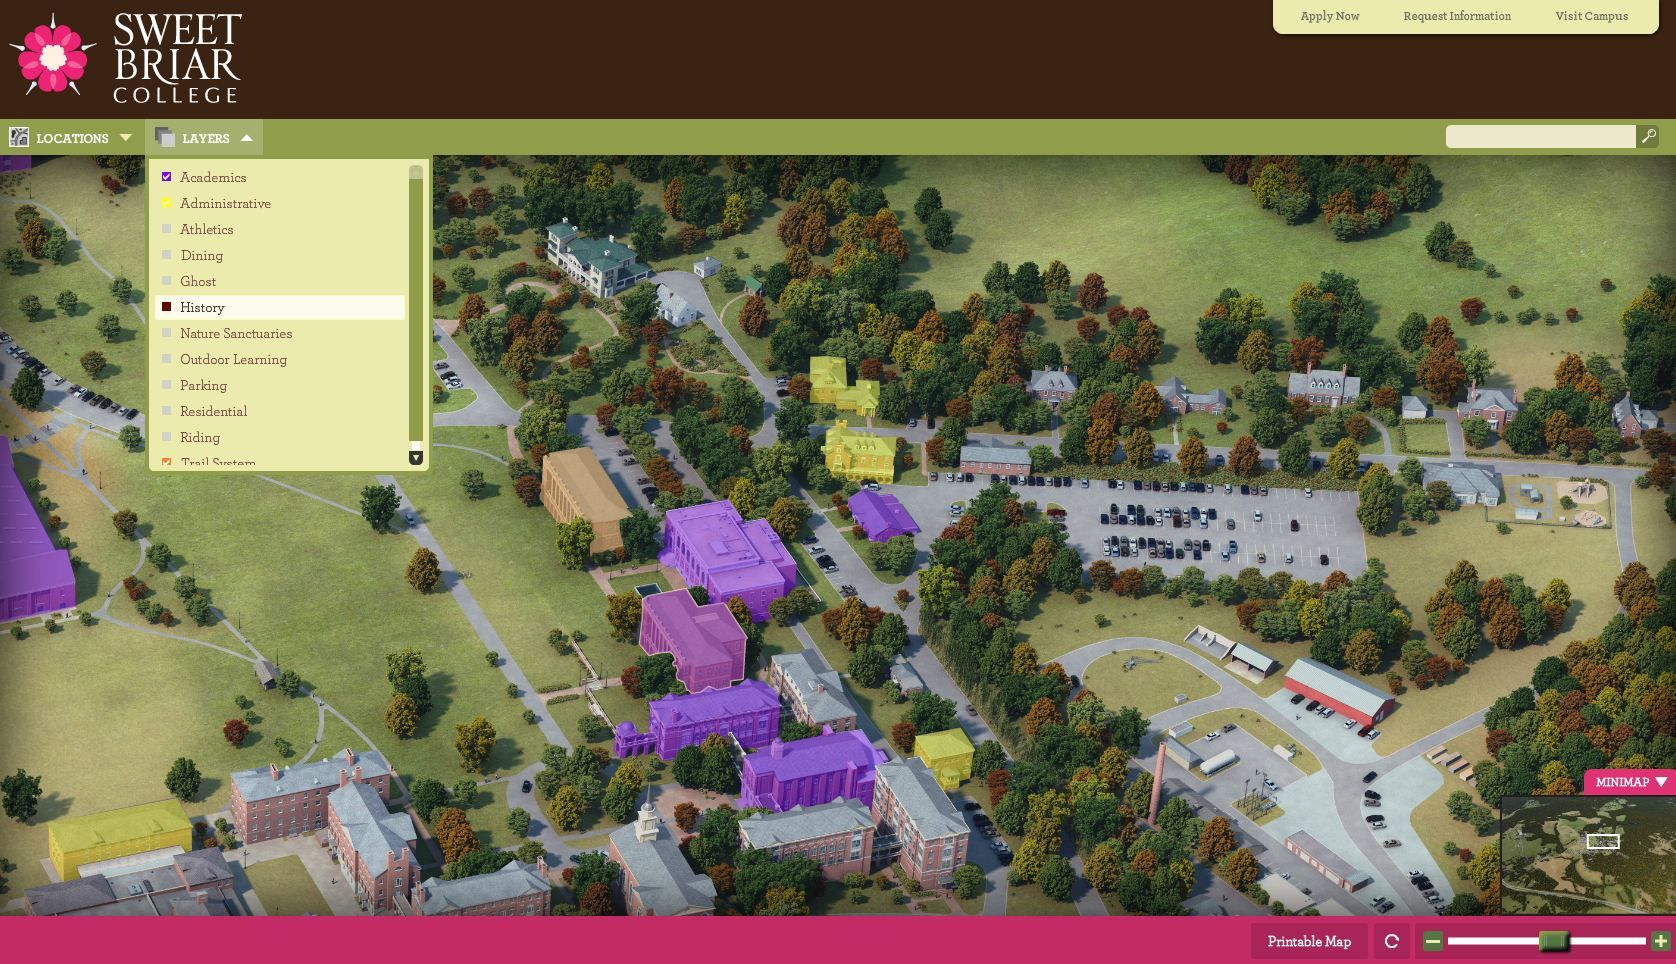 sweet briar campus map Sweet Briar College Campus Map With Multiple Layers Sweet Briar